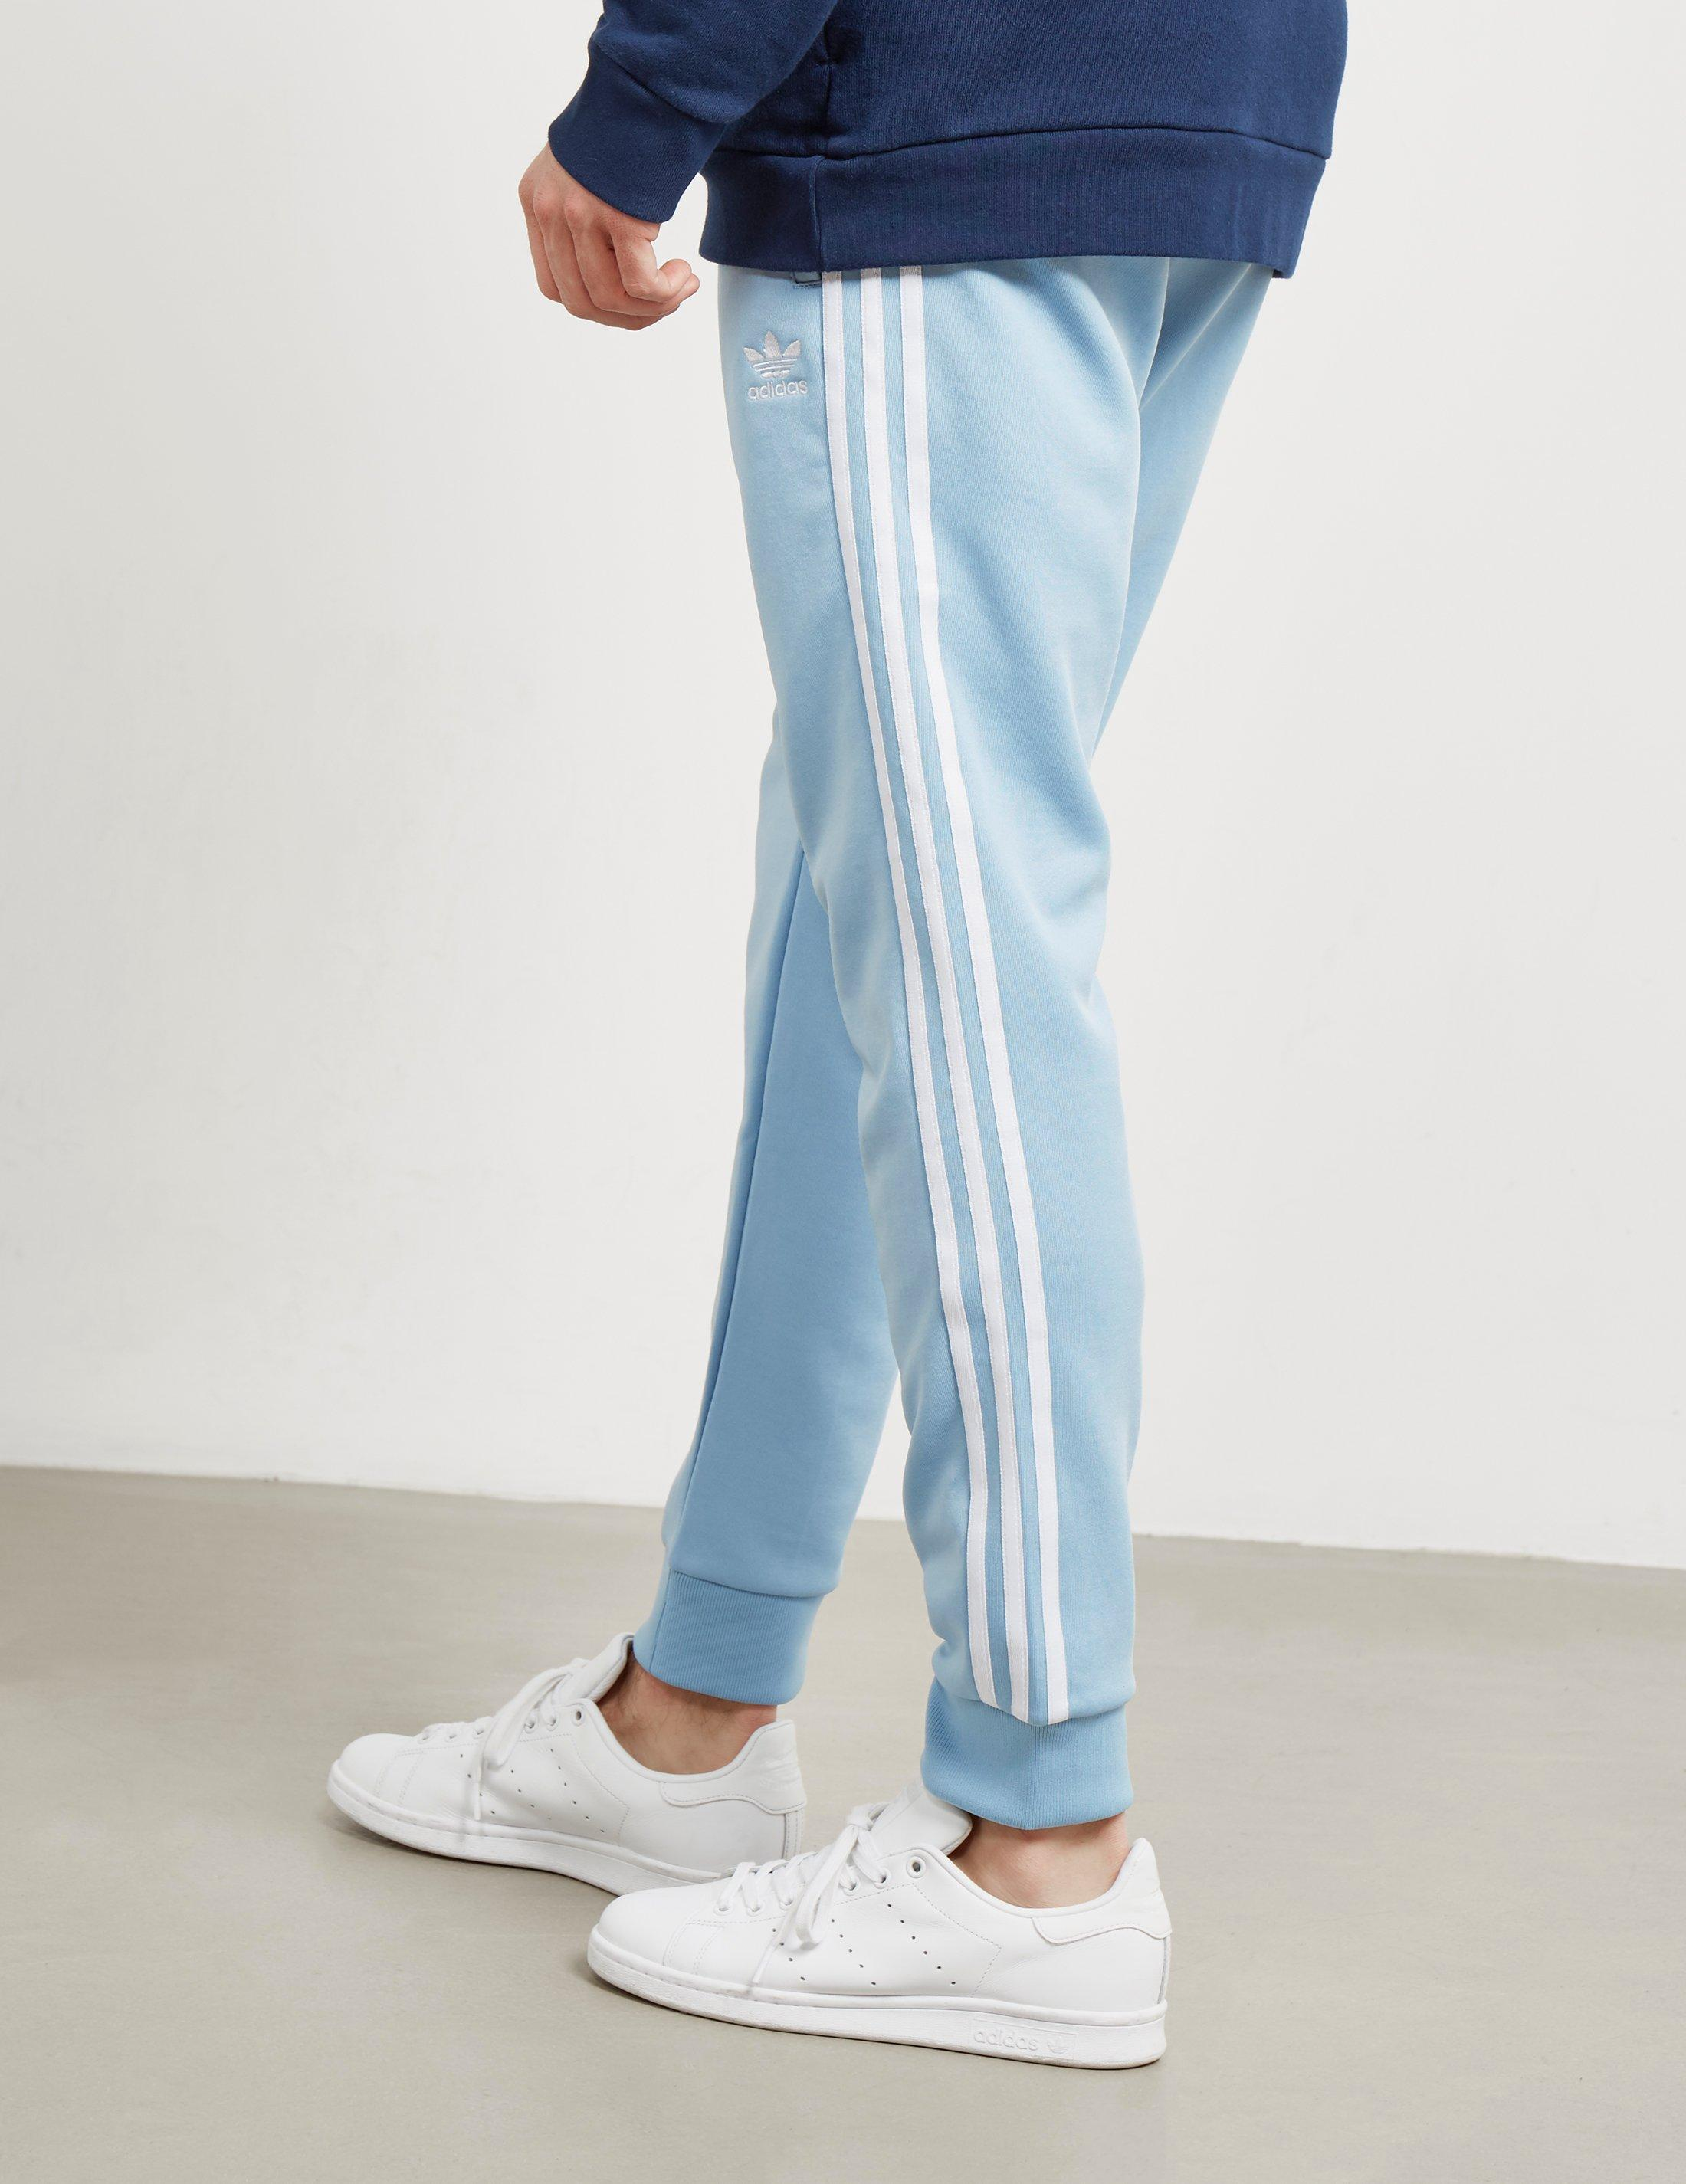 737337ce1e1c Lyst - adidas Originals Mens Superstar Track Pants Ash Blue in Blue ...